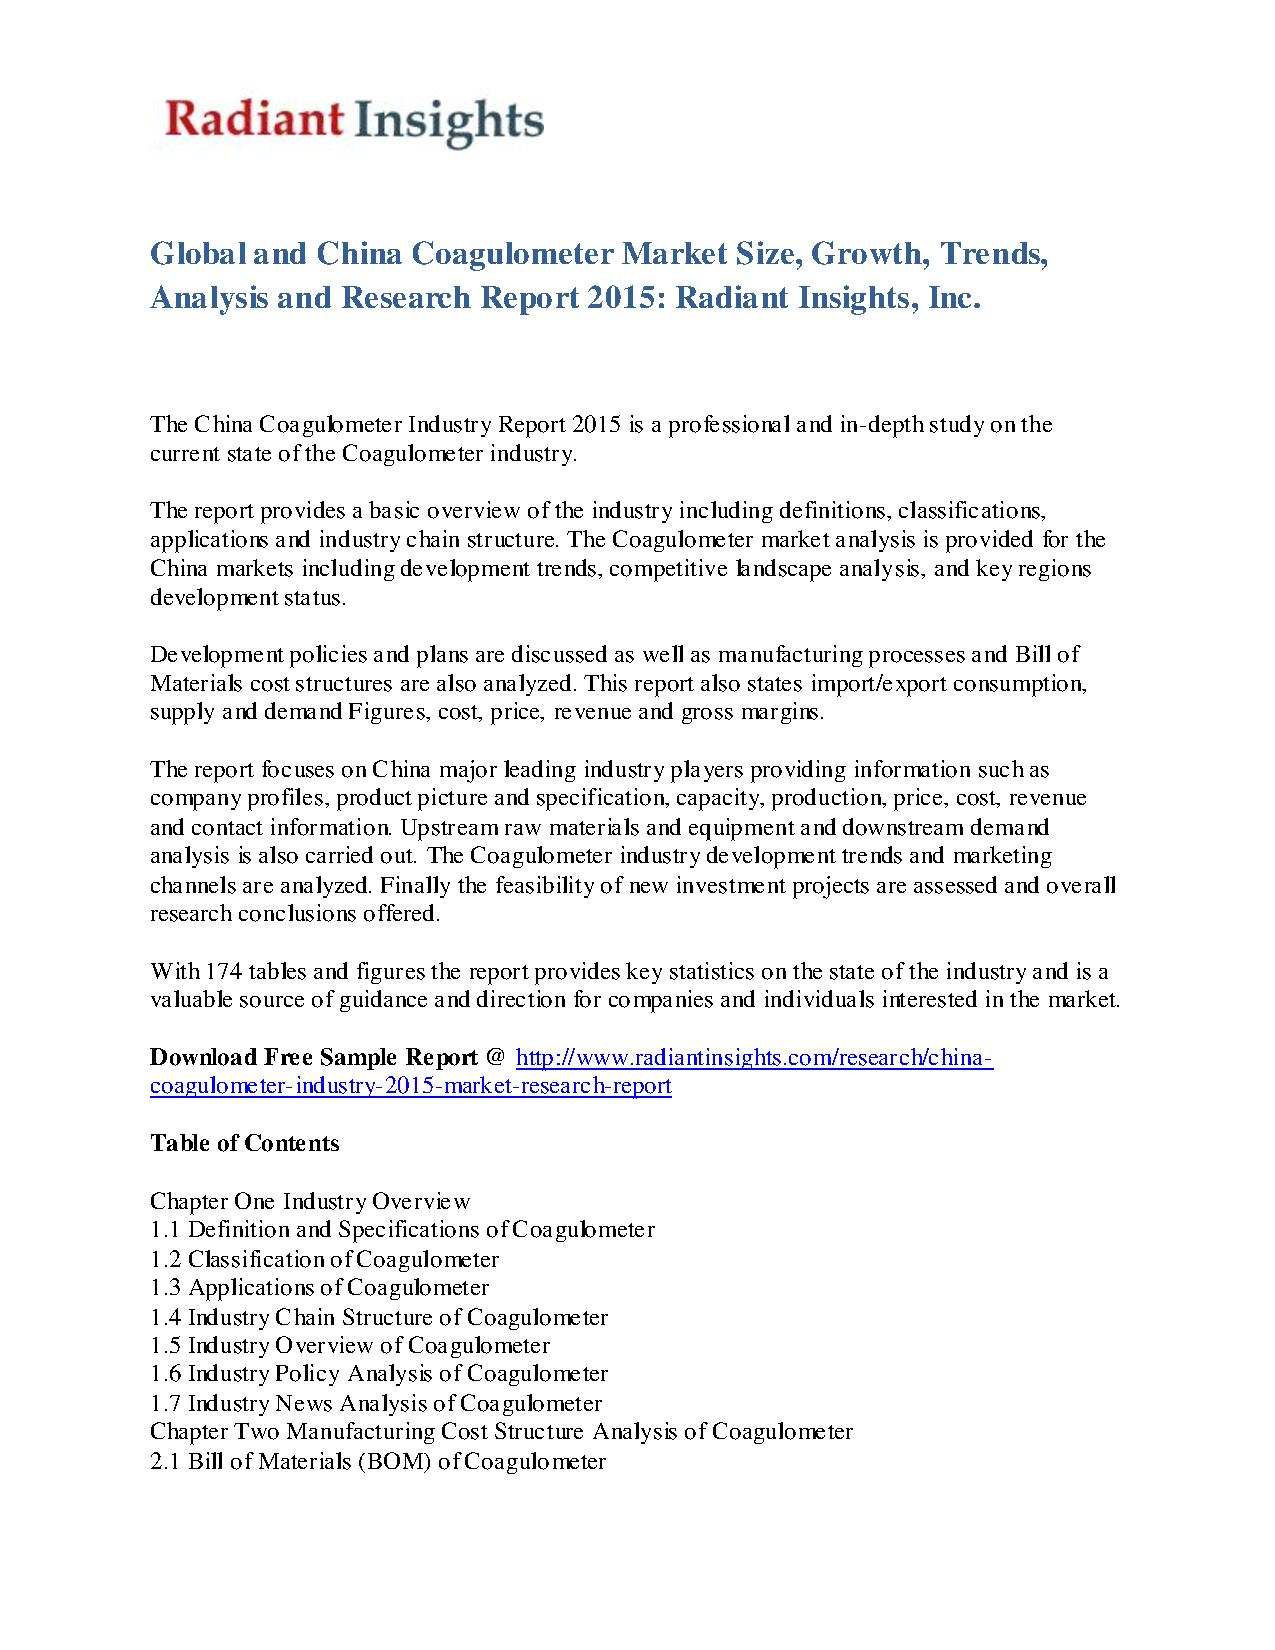 China Coagulometer Industry 2015 Market Research Report pdf